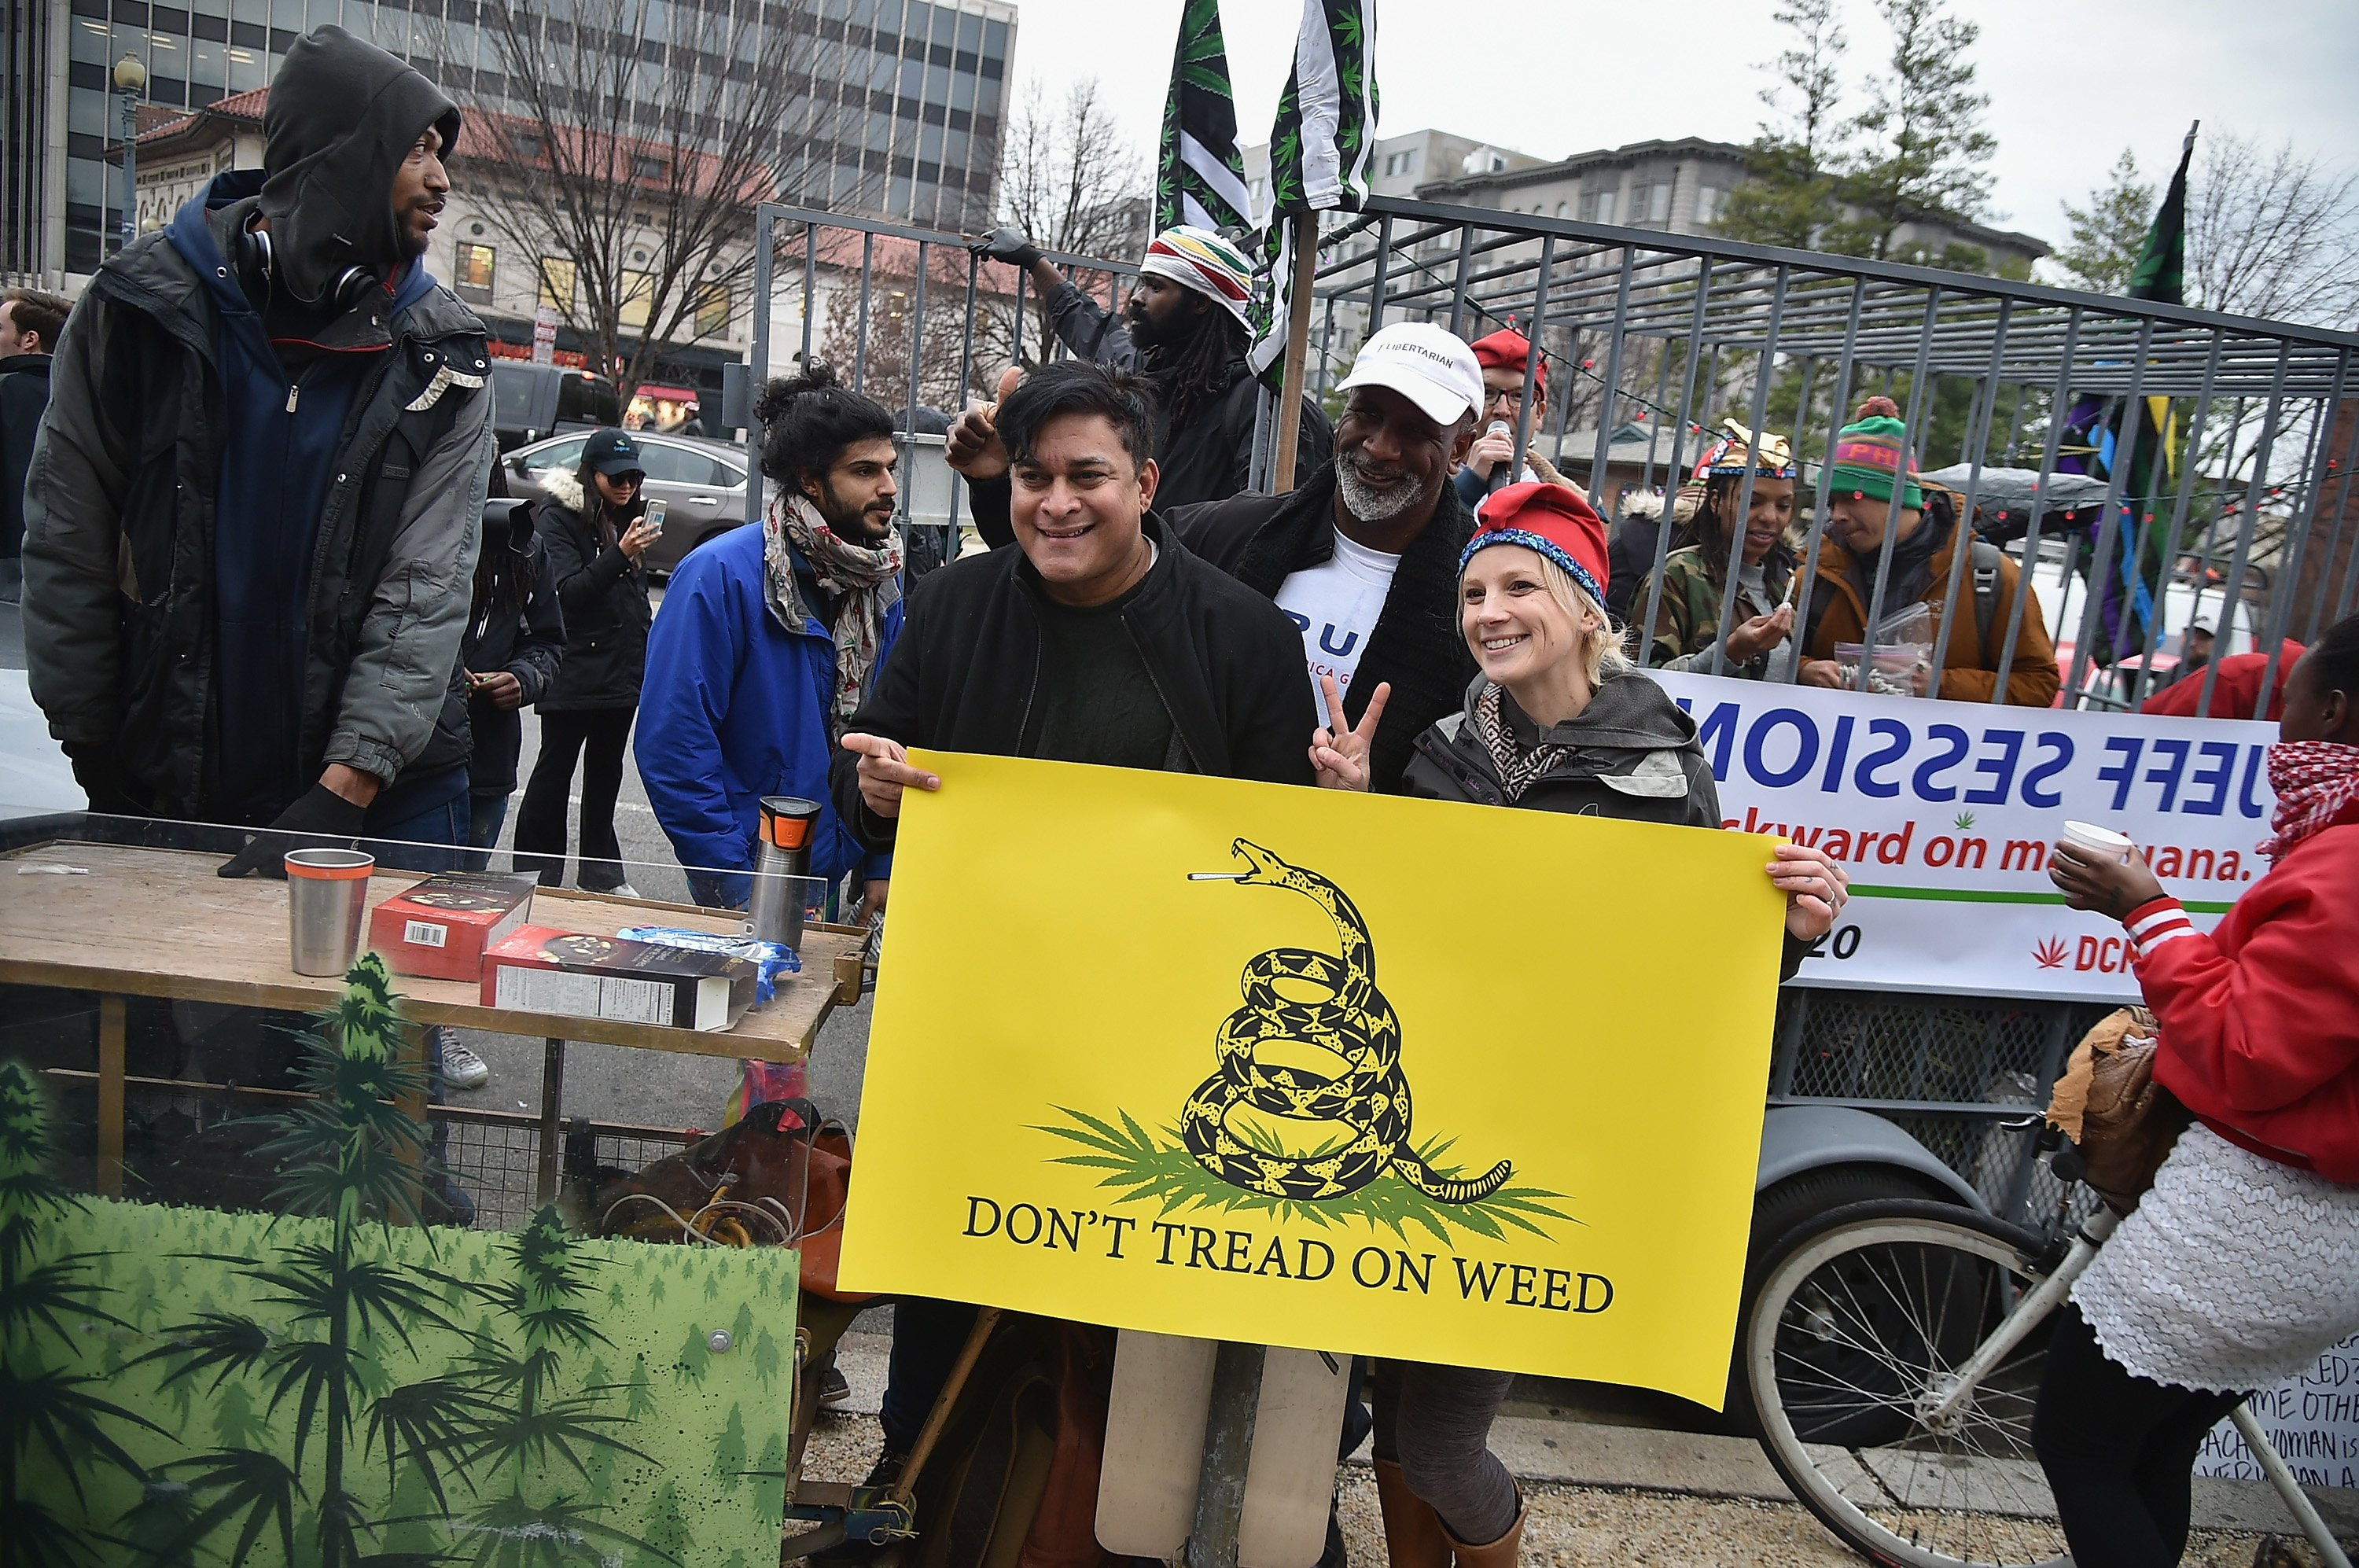 People rally in Washington, D.C., in favor of marijuana legalization.